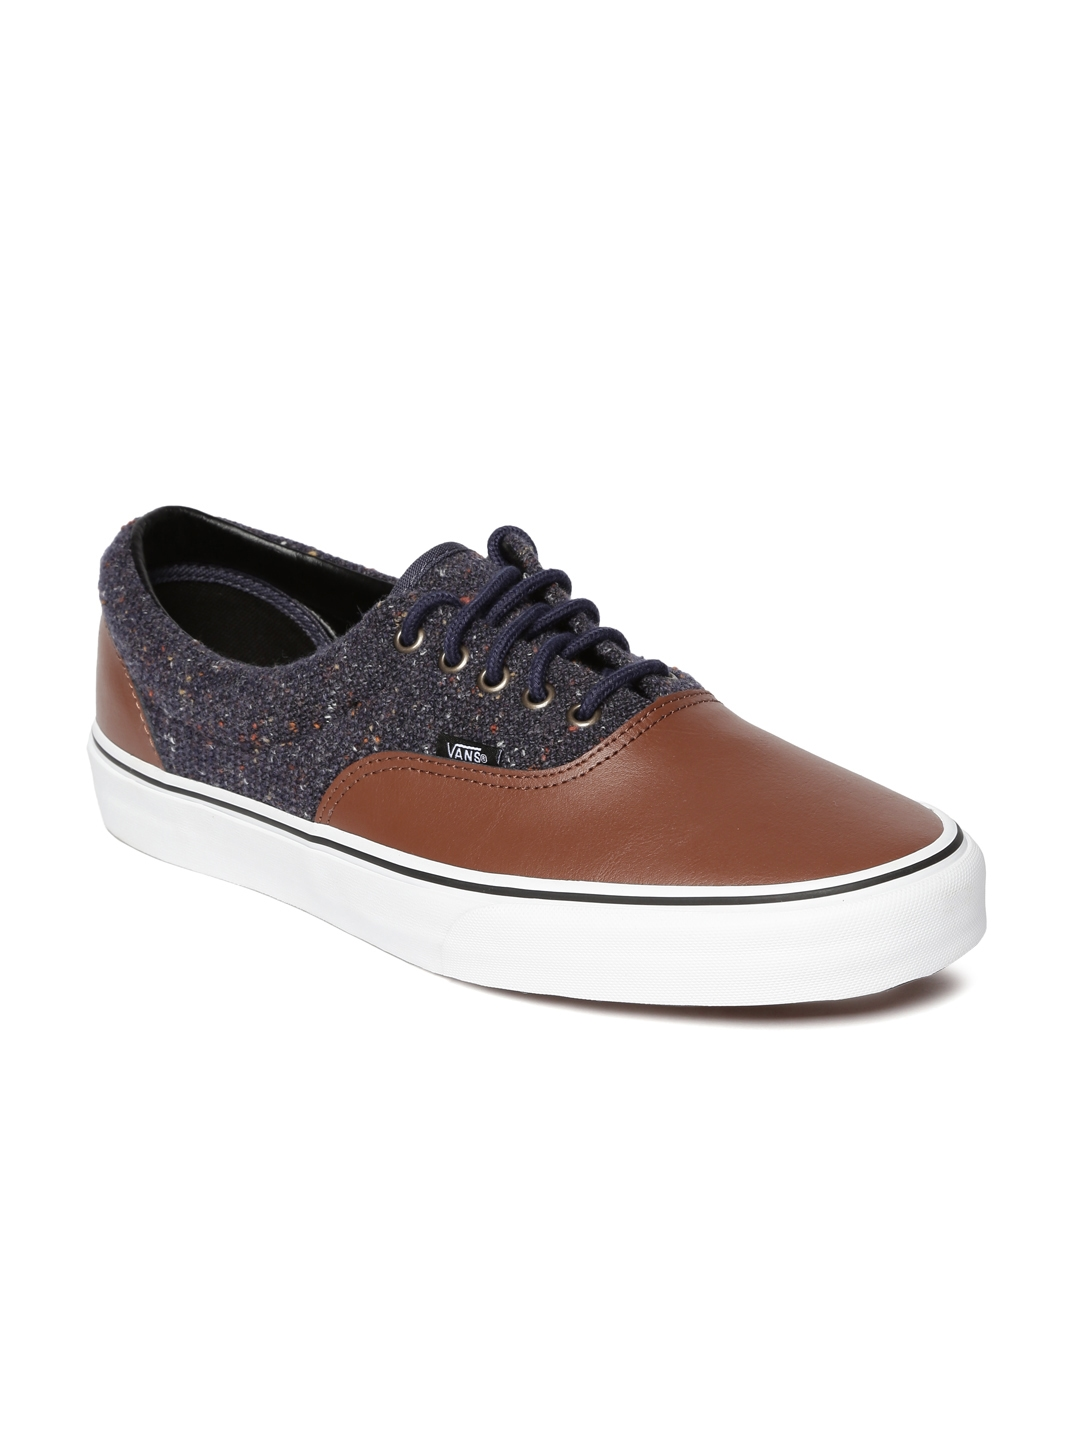 24a5a7d0cb Buy Vans Unisex Brown   Navy Colourblock Era Sneakers - Casual Shoes ...